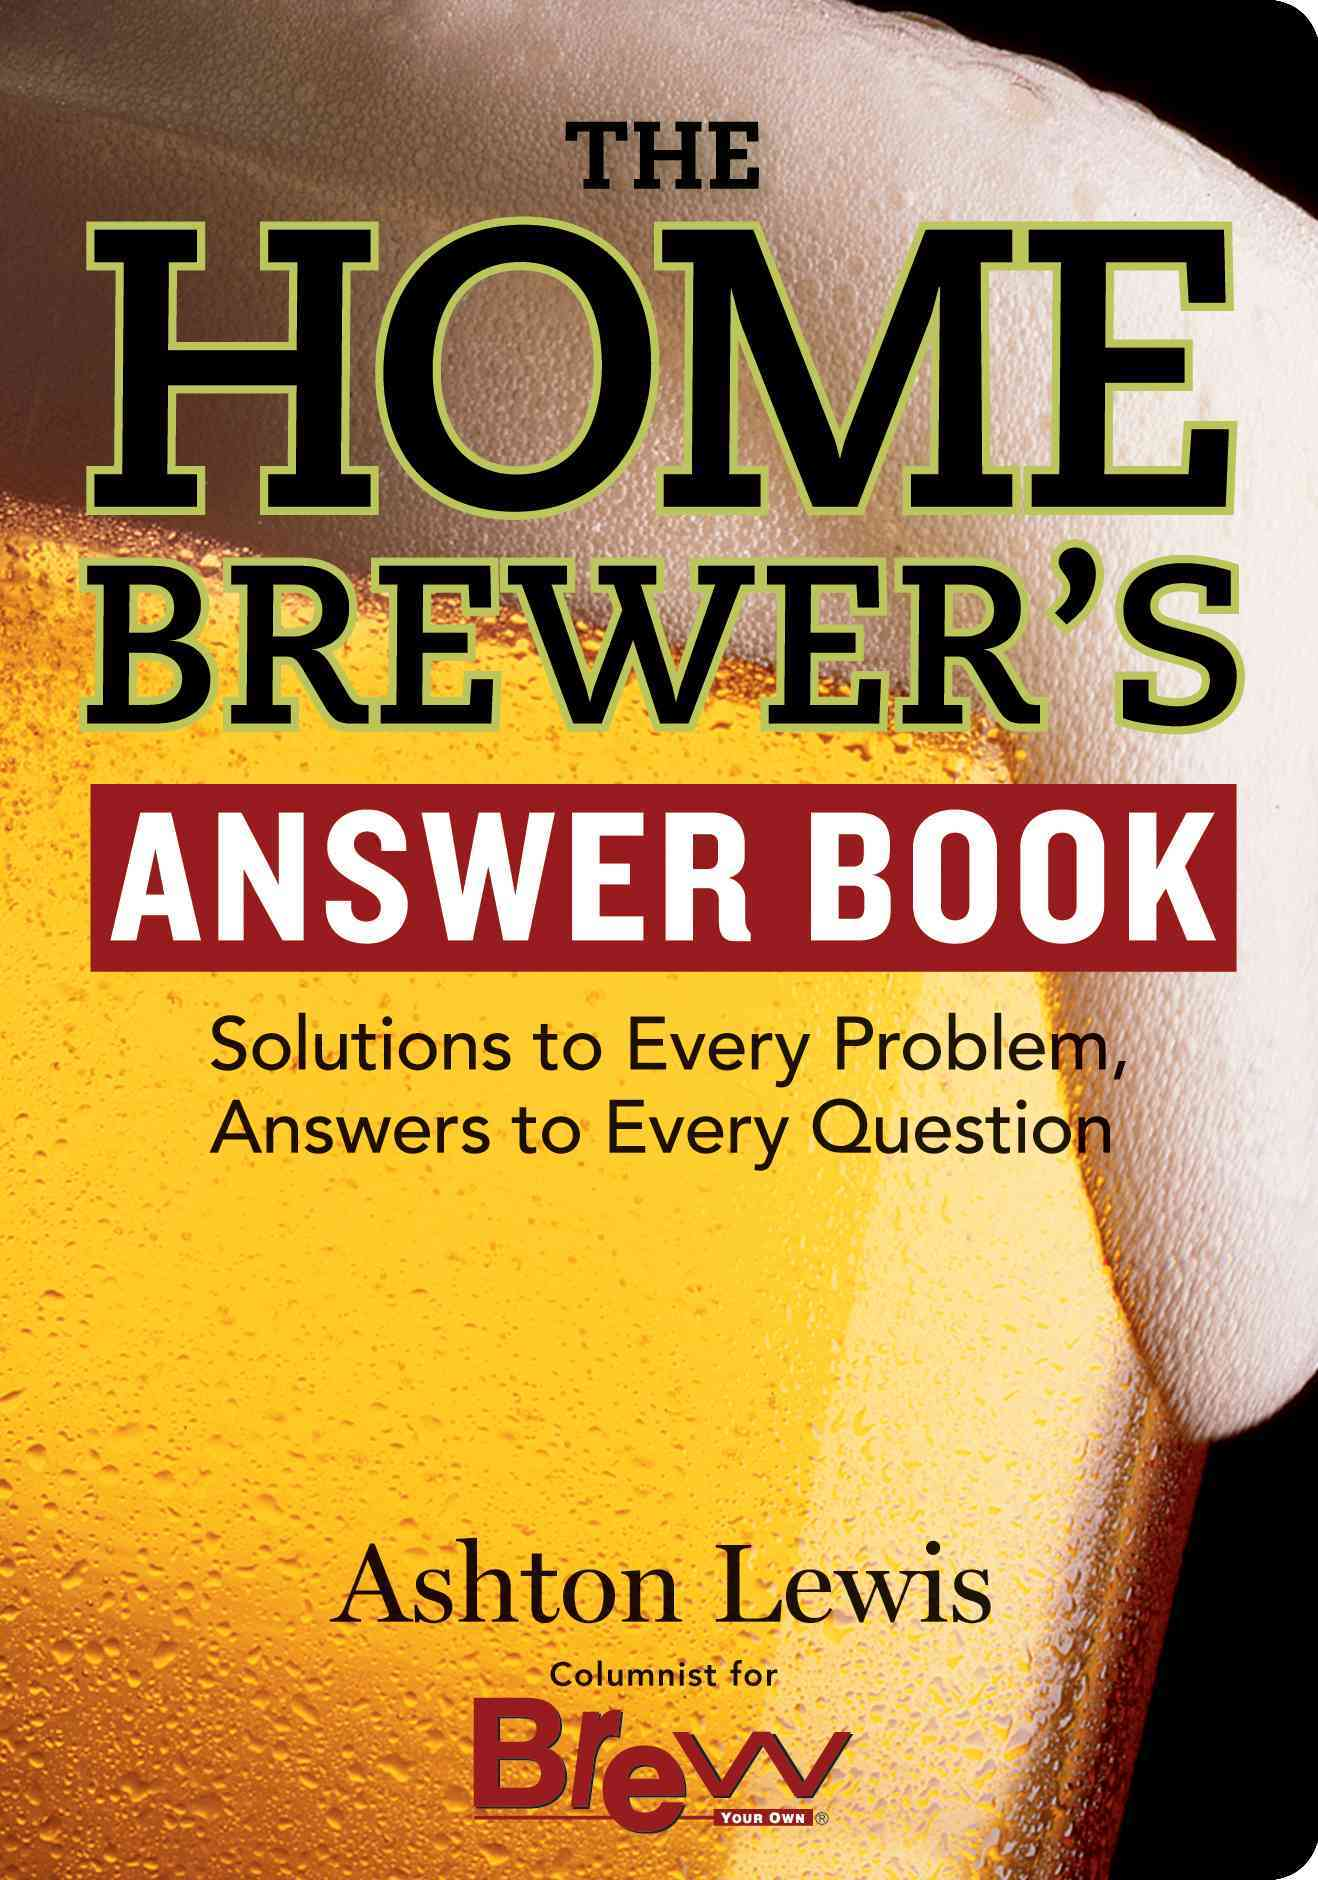 The Home Brewer's Answer Book: Solutions to Every Problem, Answers to Every Question (Paperback)